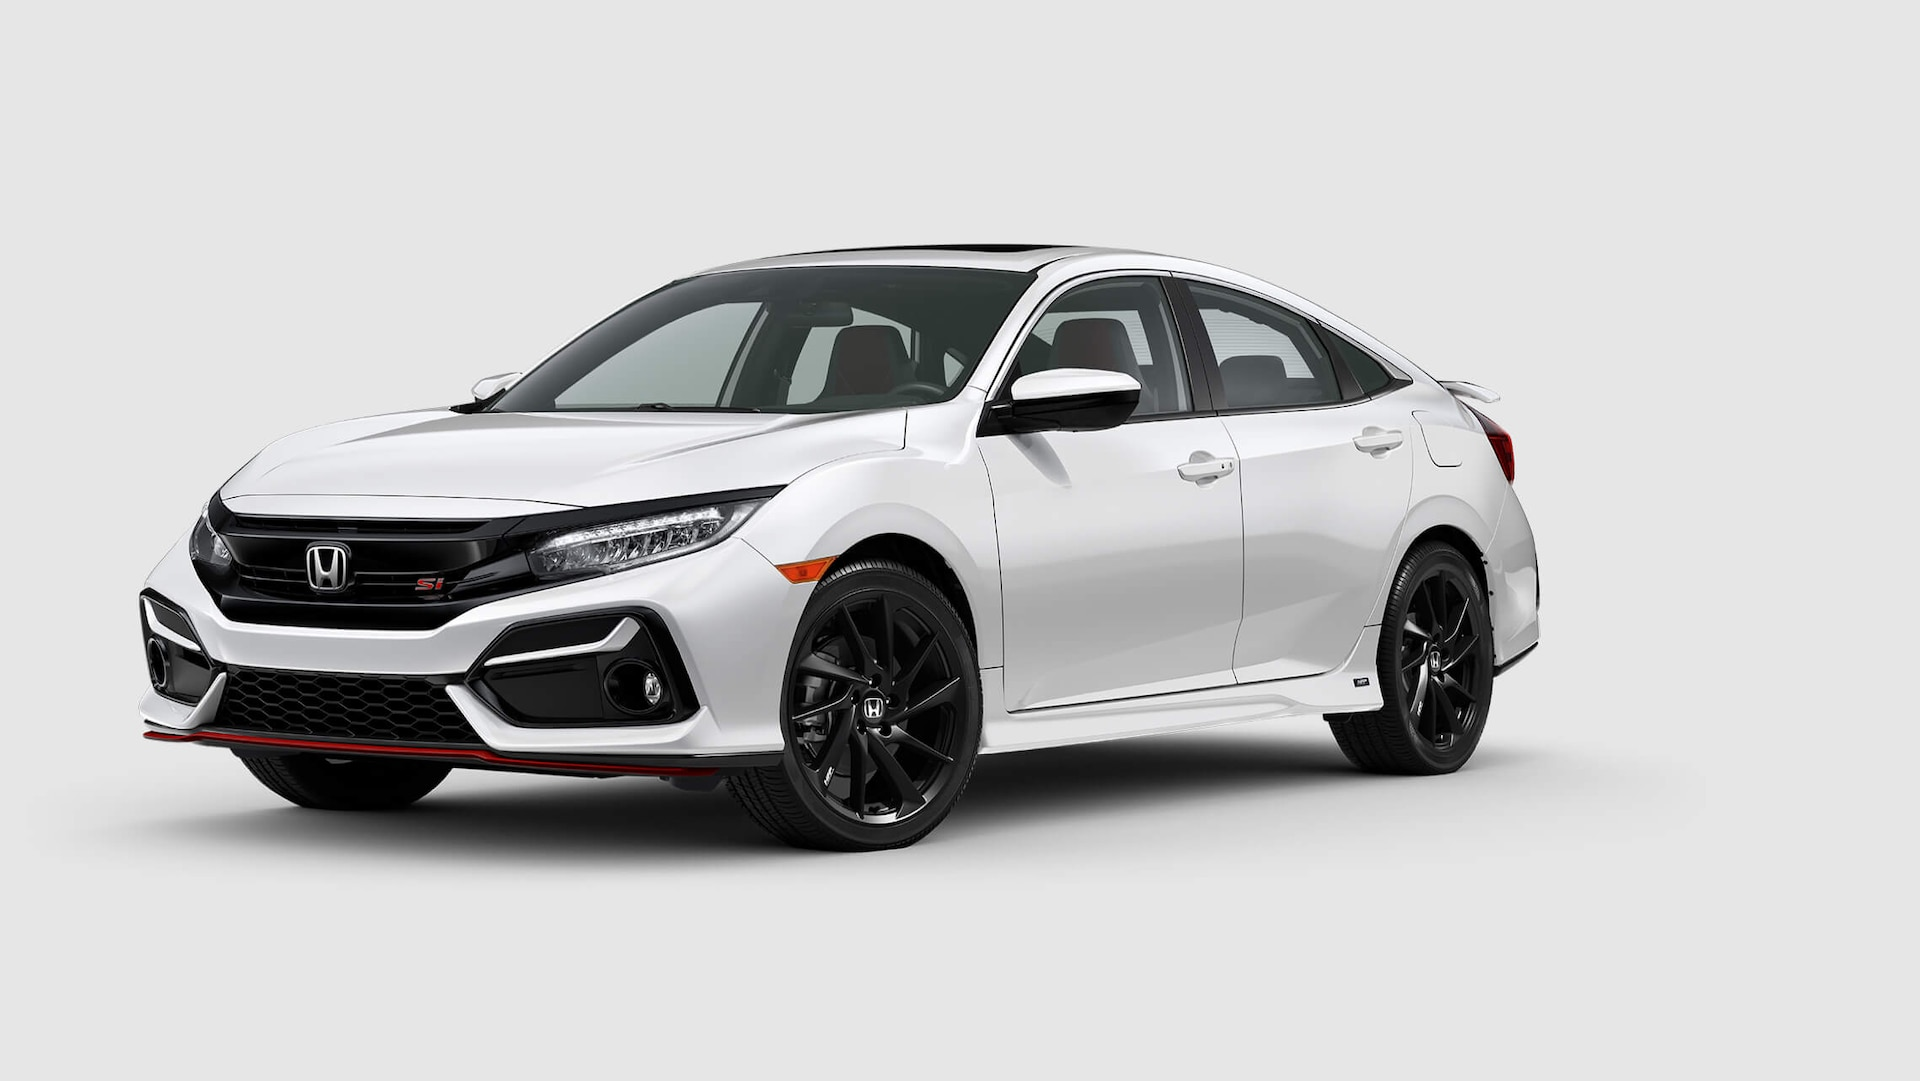 Front 3/4 passenger's side view of 2020 Honda Civic Si Sedan in Platinum White Pearl.